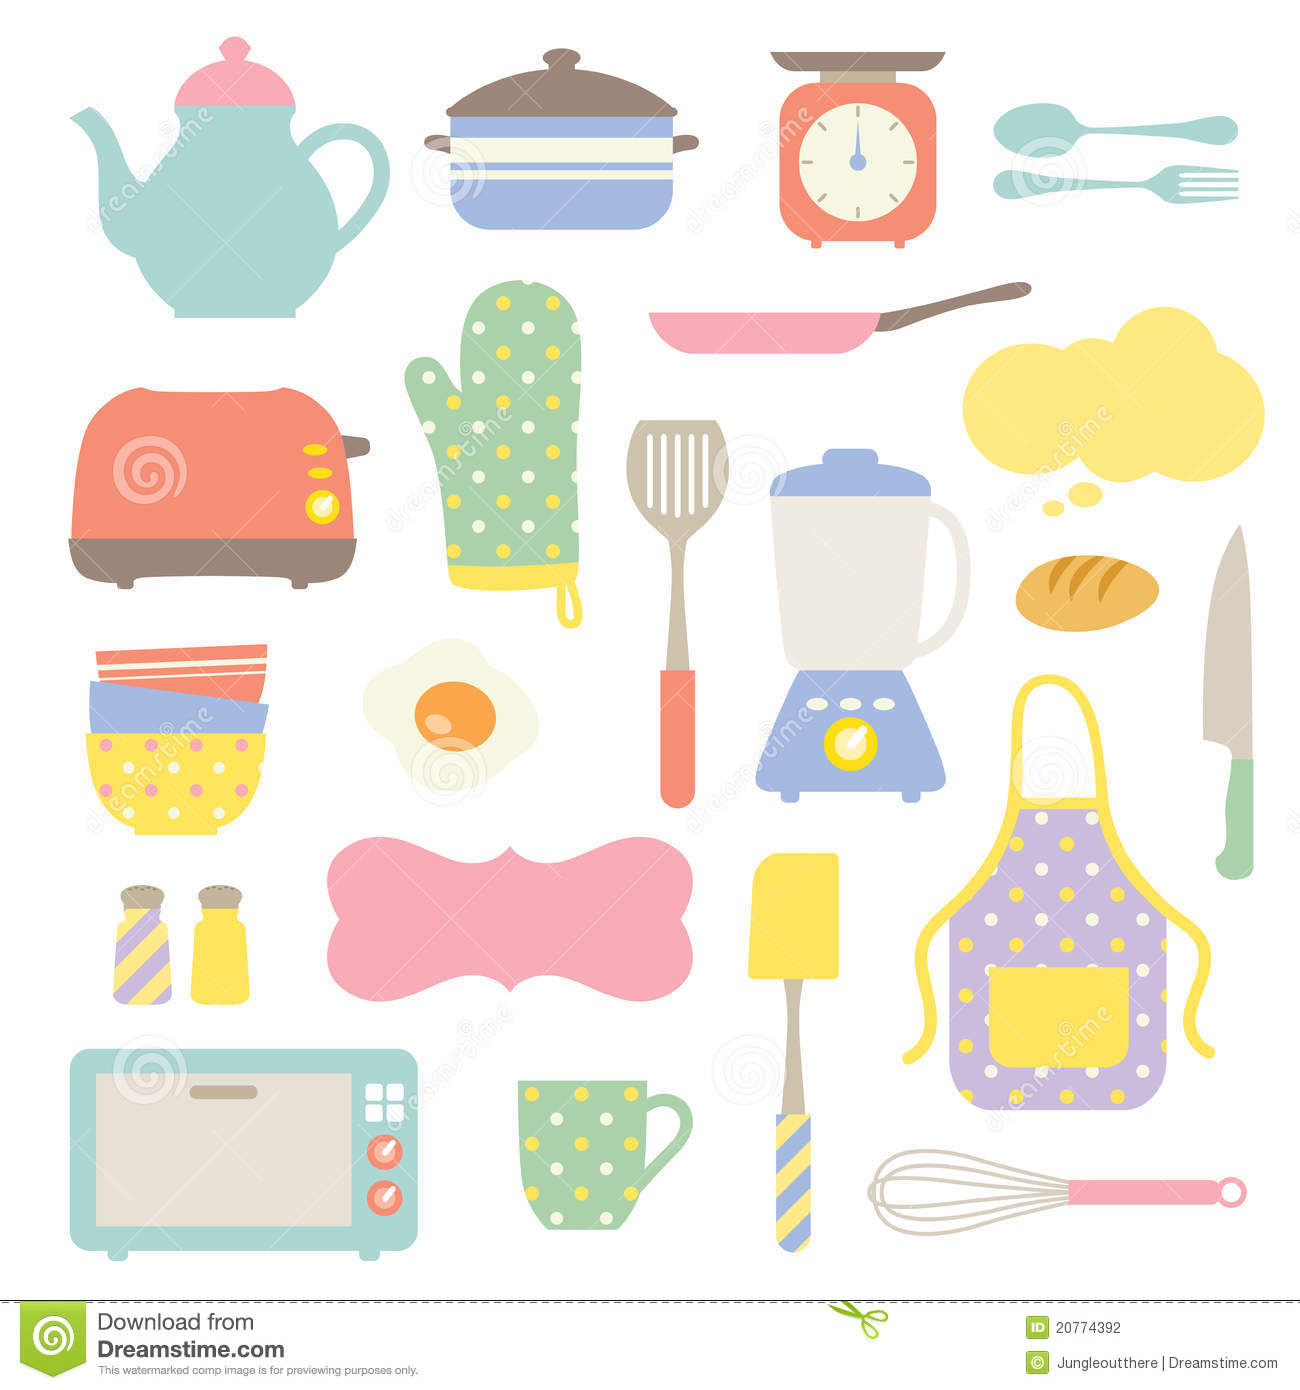 Cute Cooking Utensils Clipart Cute Kitchen Collection Prirtb Clipart Suggest